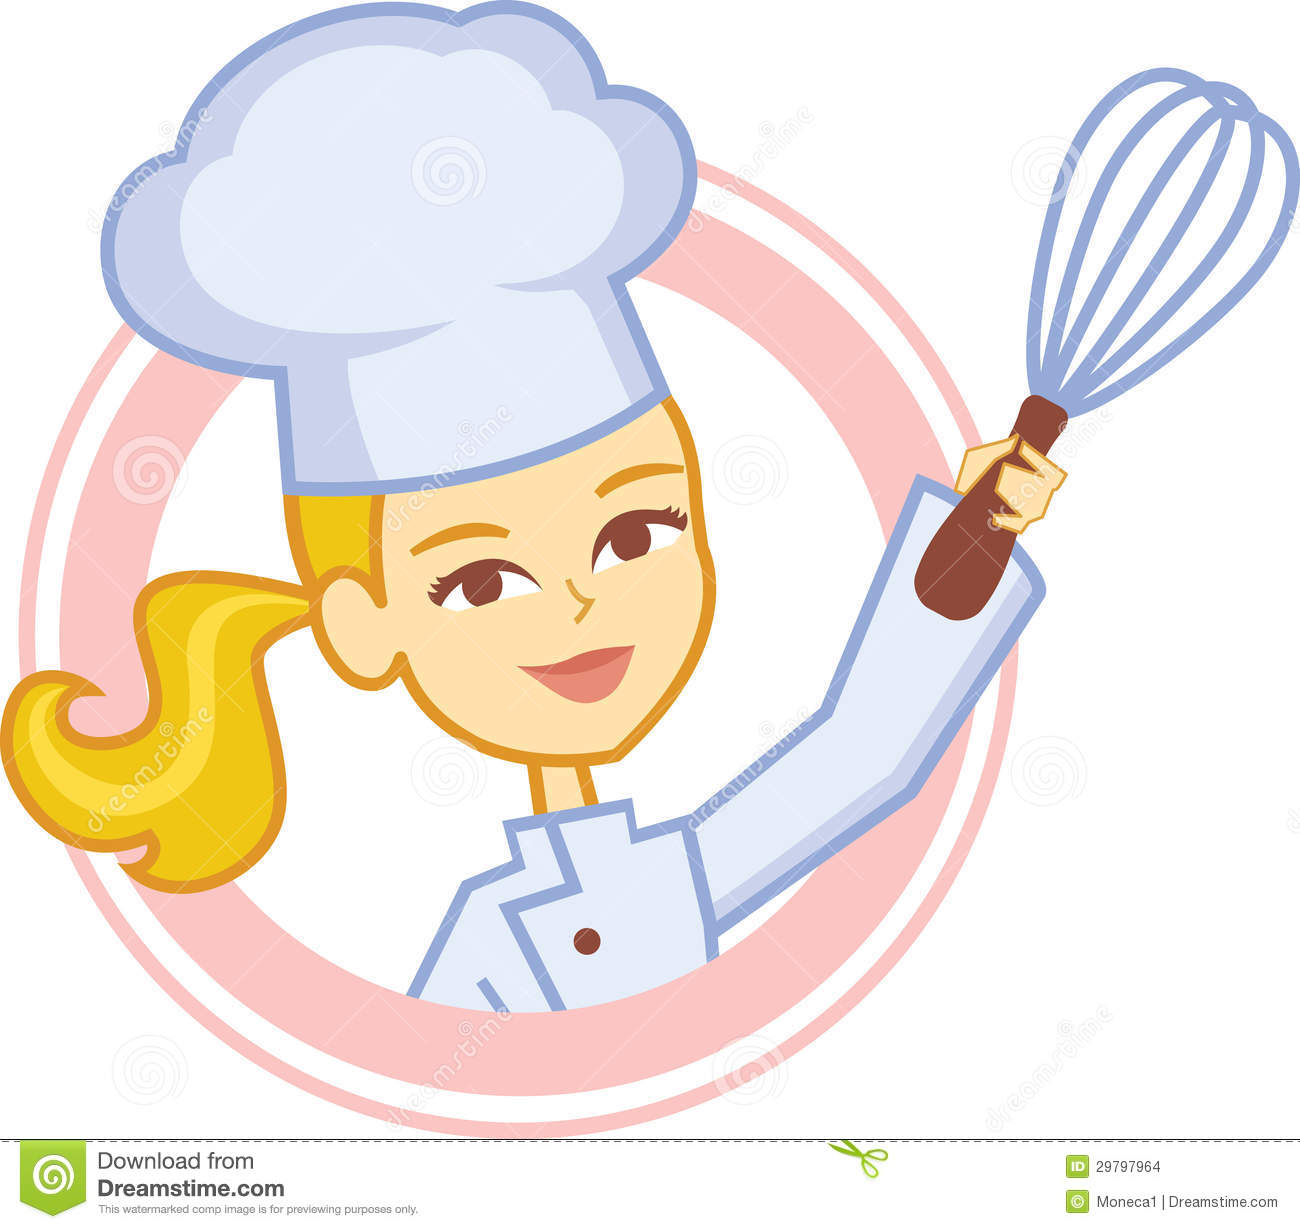 Girl Chef Clipart Bakery culinary girl chef